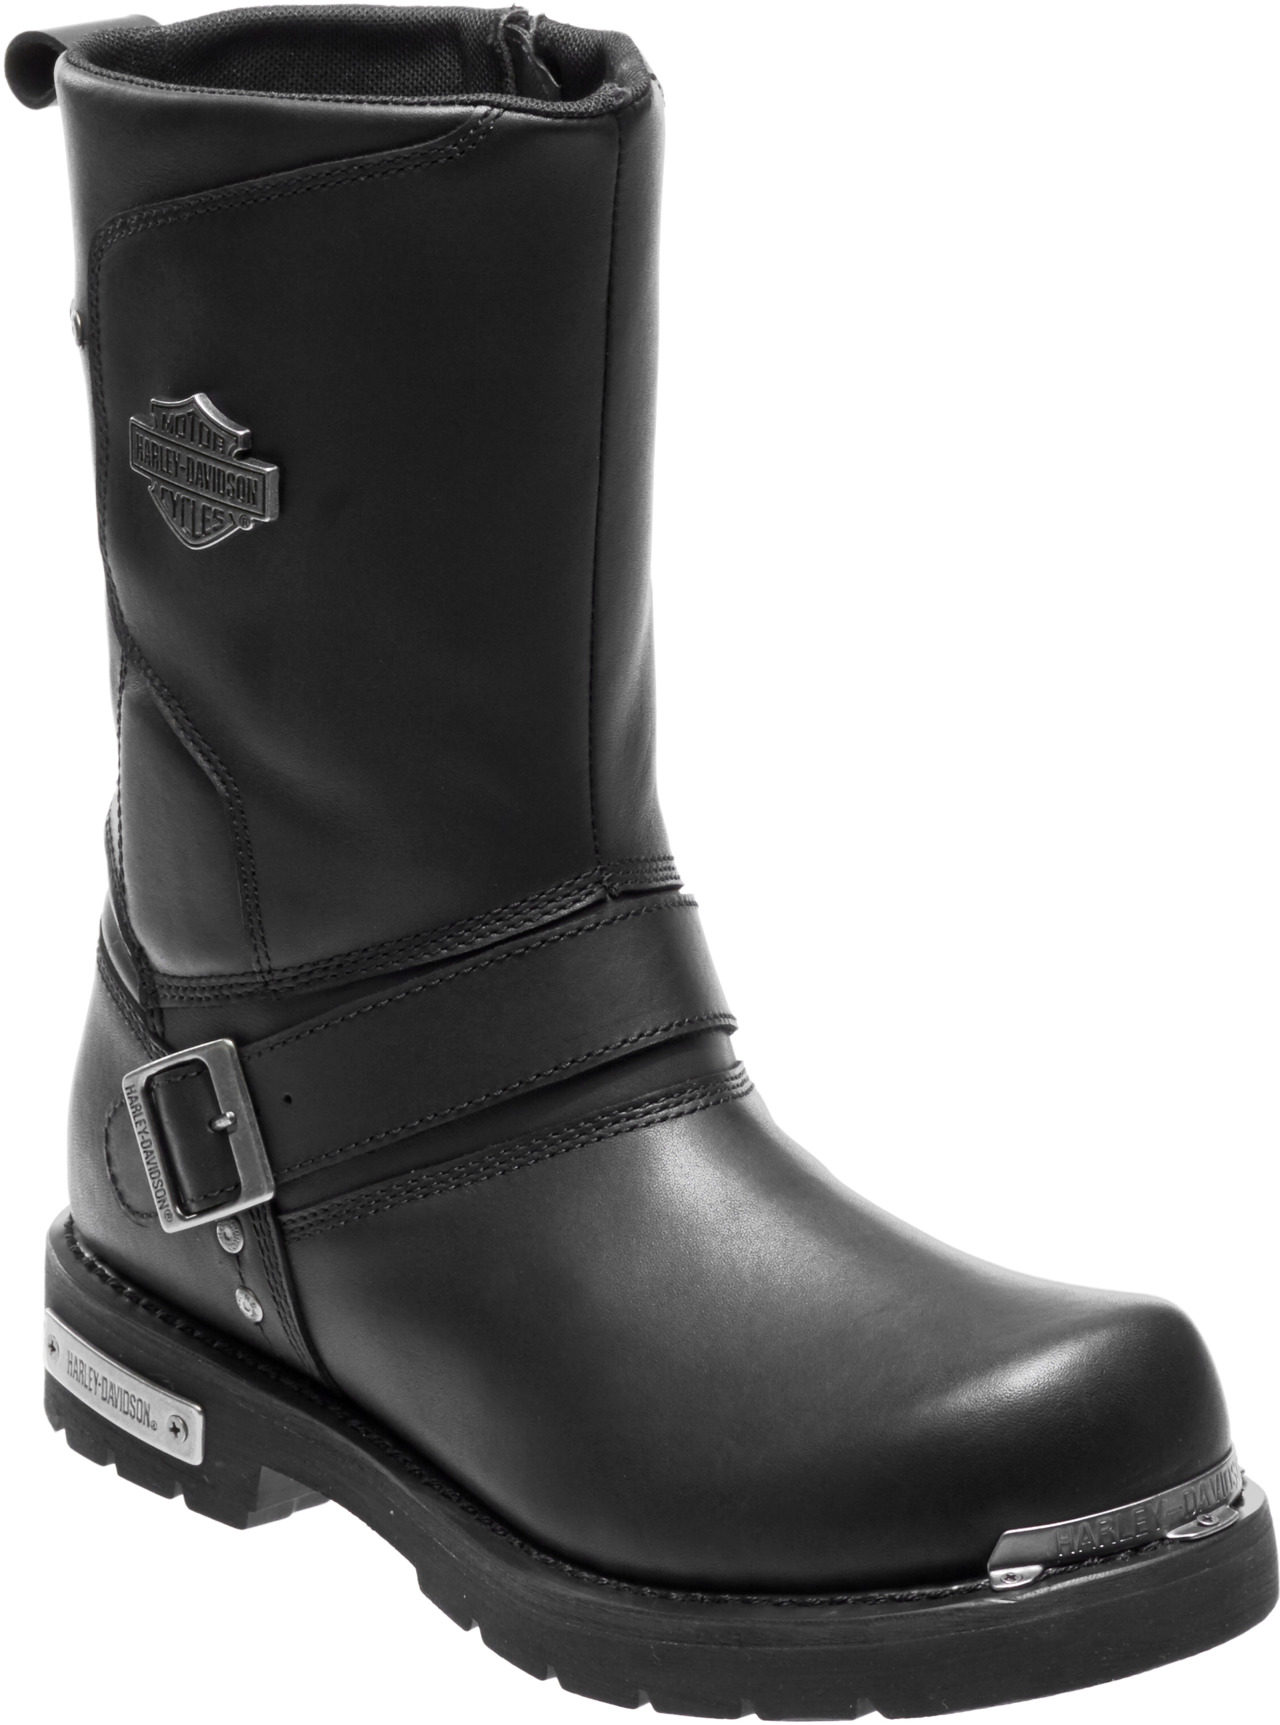 9f16716387513f Harley-Davidson® Fall Riding Footwear Collection Features the Best in  Performance and Safety